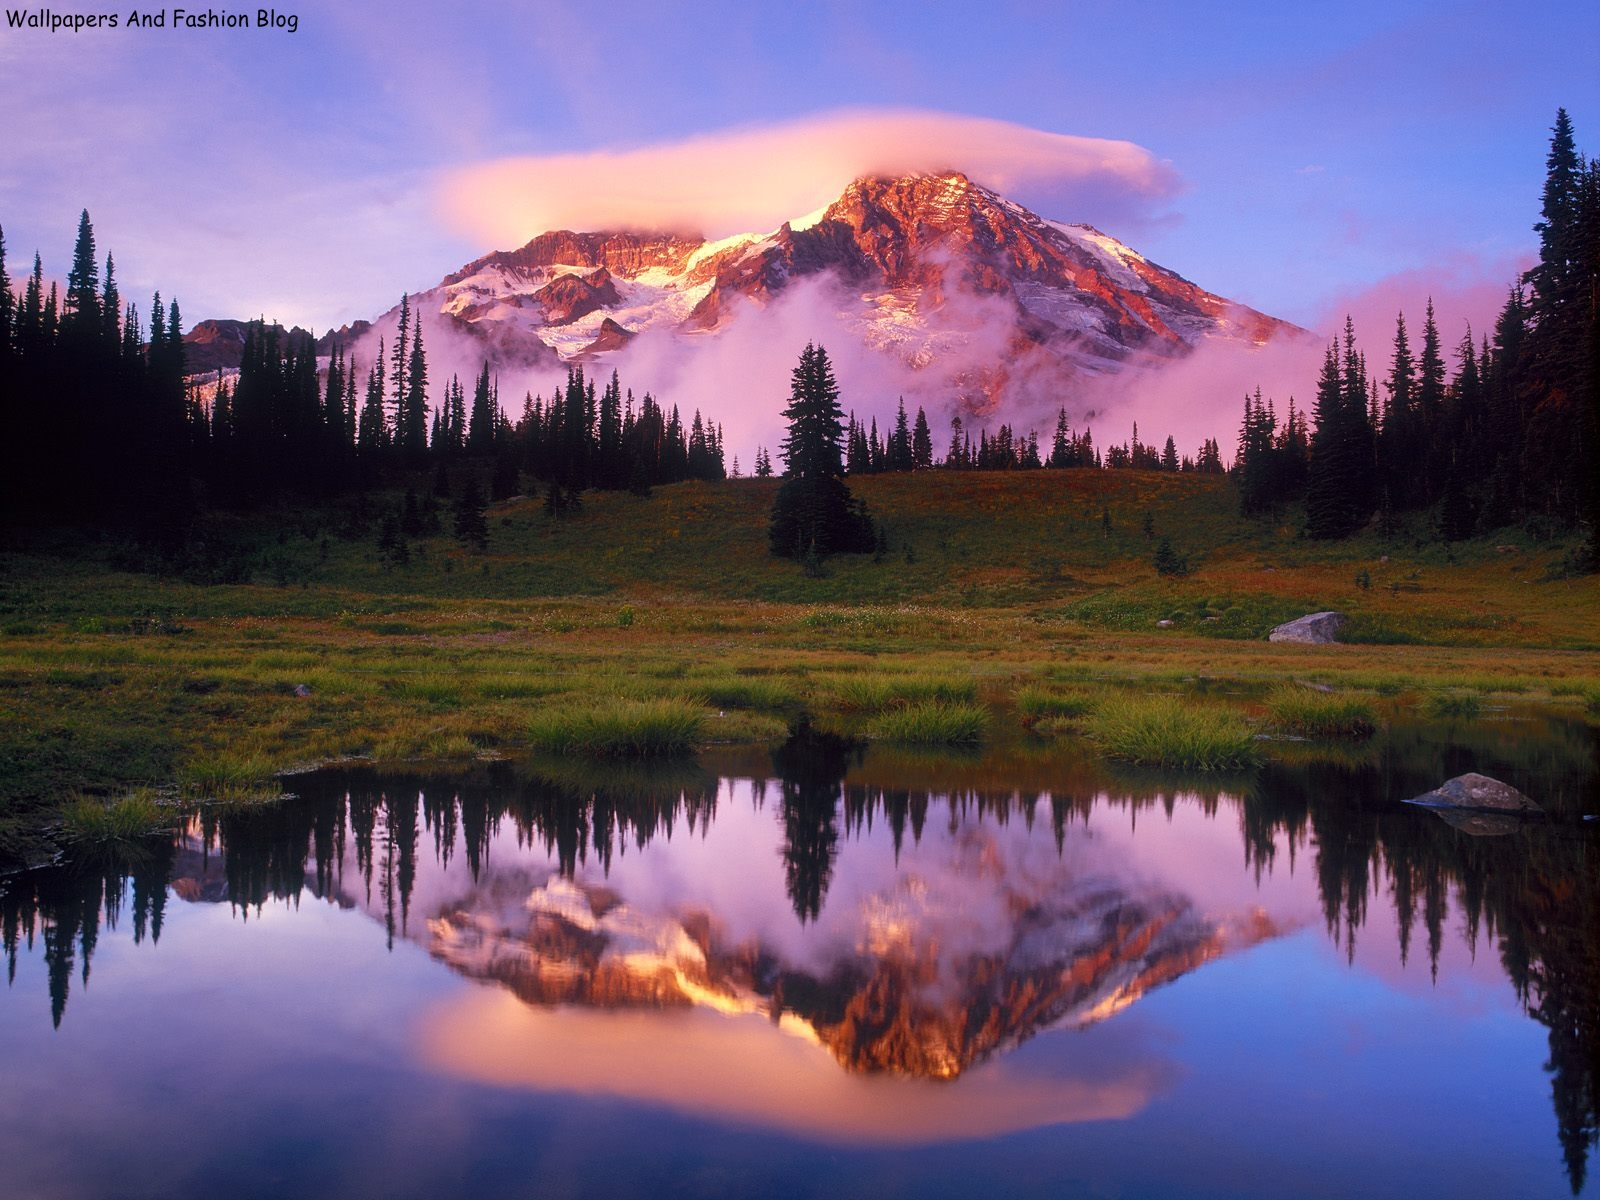 http://2.bp.blogspot.com/-s-8IDcCbXD8/UCxW7TTrjvI/AAAAAAAAEVE/oVyBogz_1oo/s1600/Mount+Rainier+and+Lenticular+Cloud+Reflected+at+Sunset,+Washington.jpg